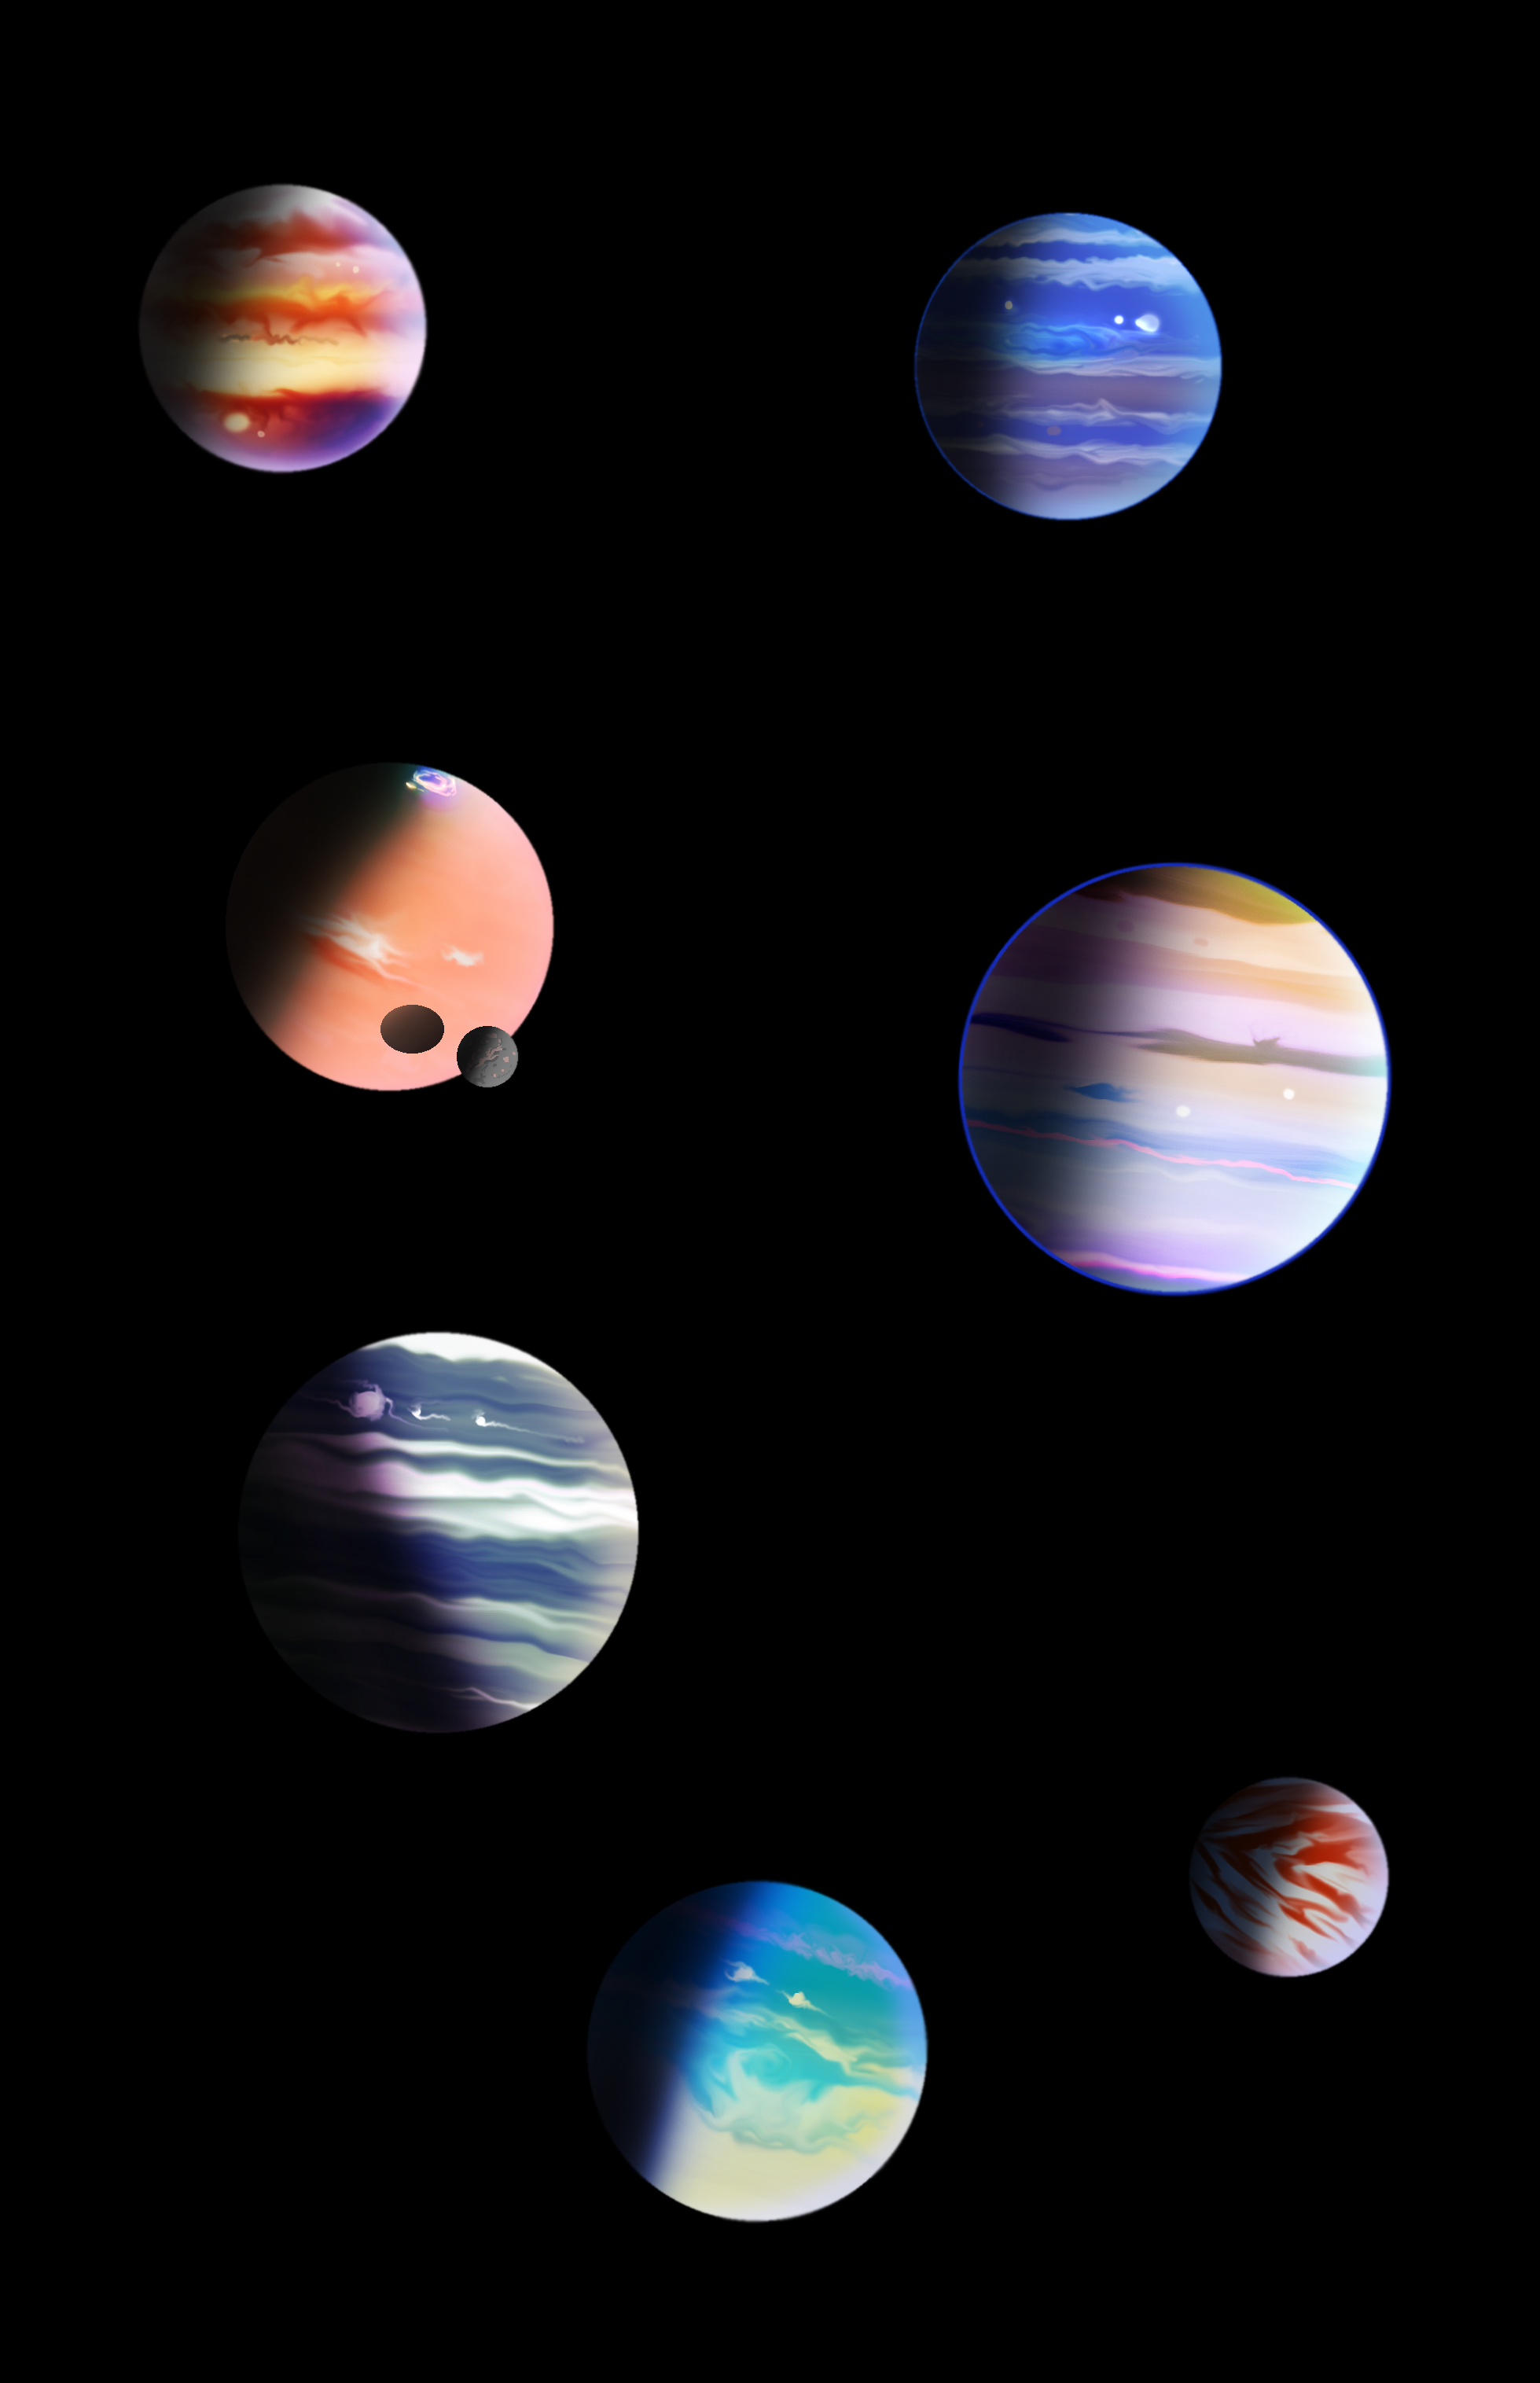 gas planets by homer1960 on DeviantArt